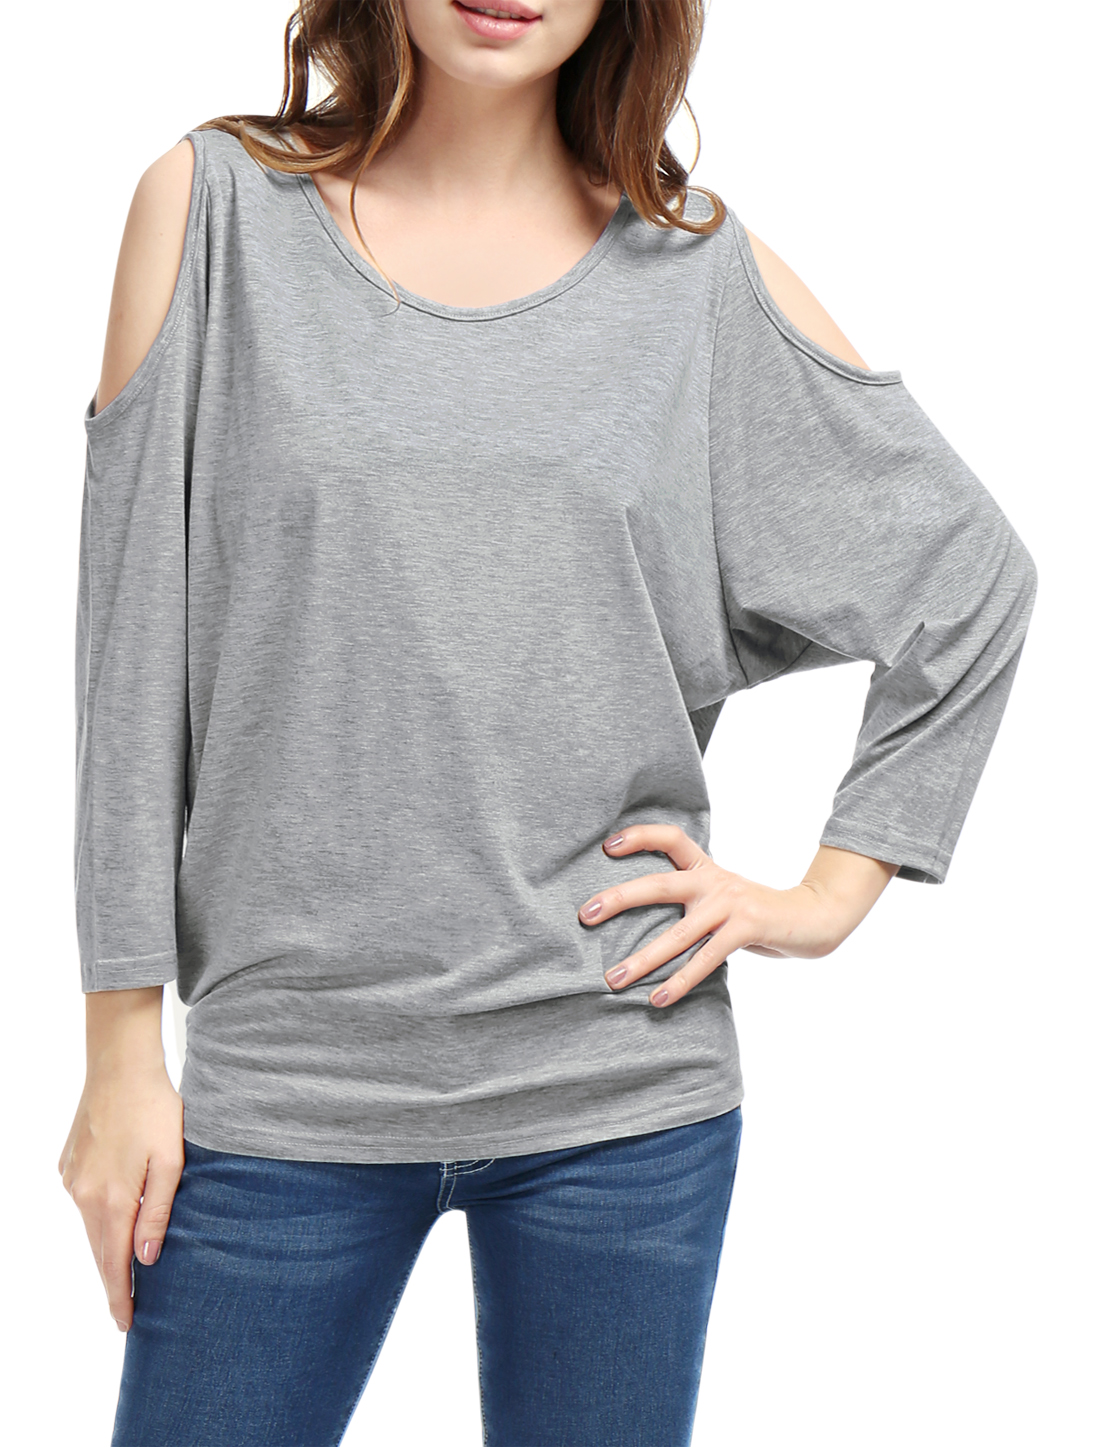 Batwing Sleeves Scoop Neck Casual Gray Top Shirt for Lady 2X